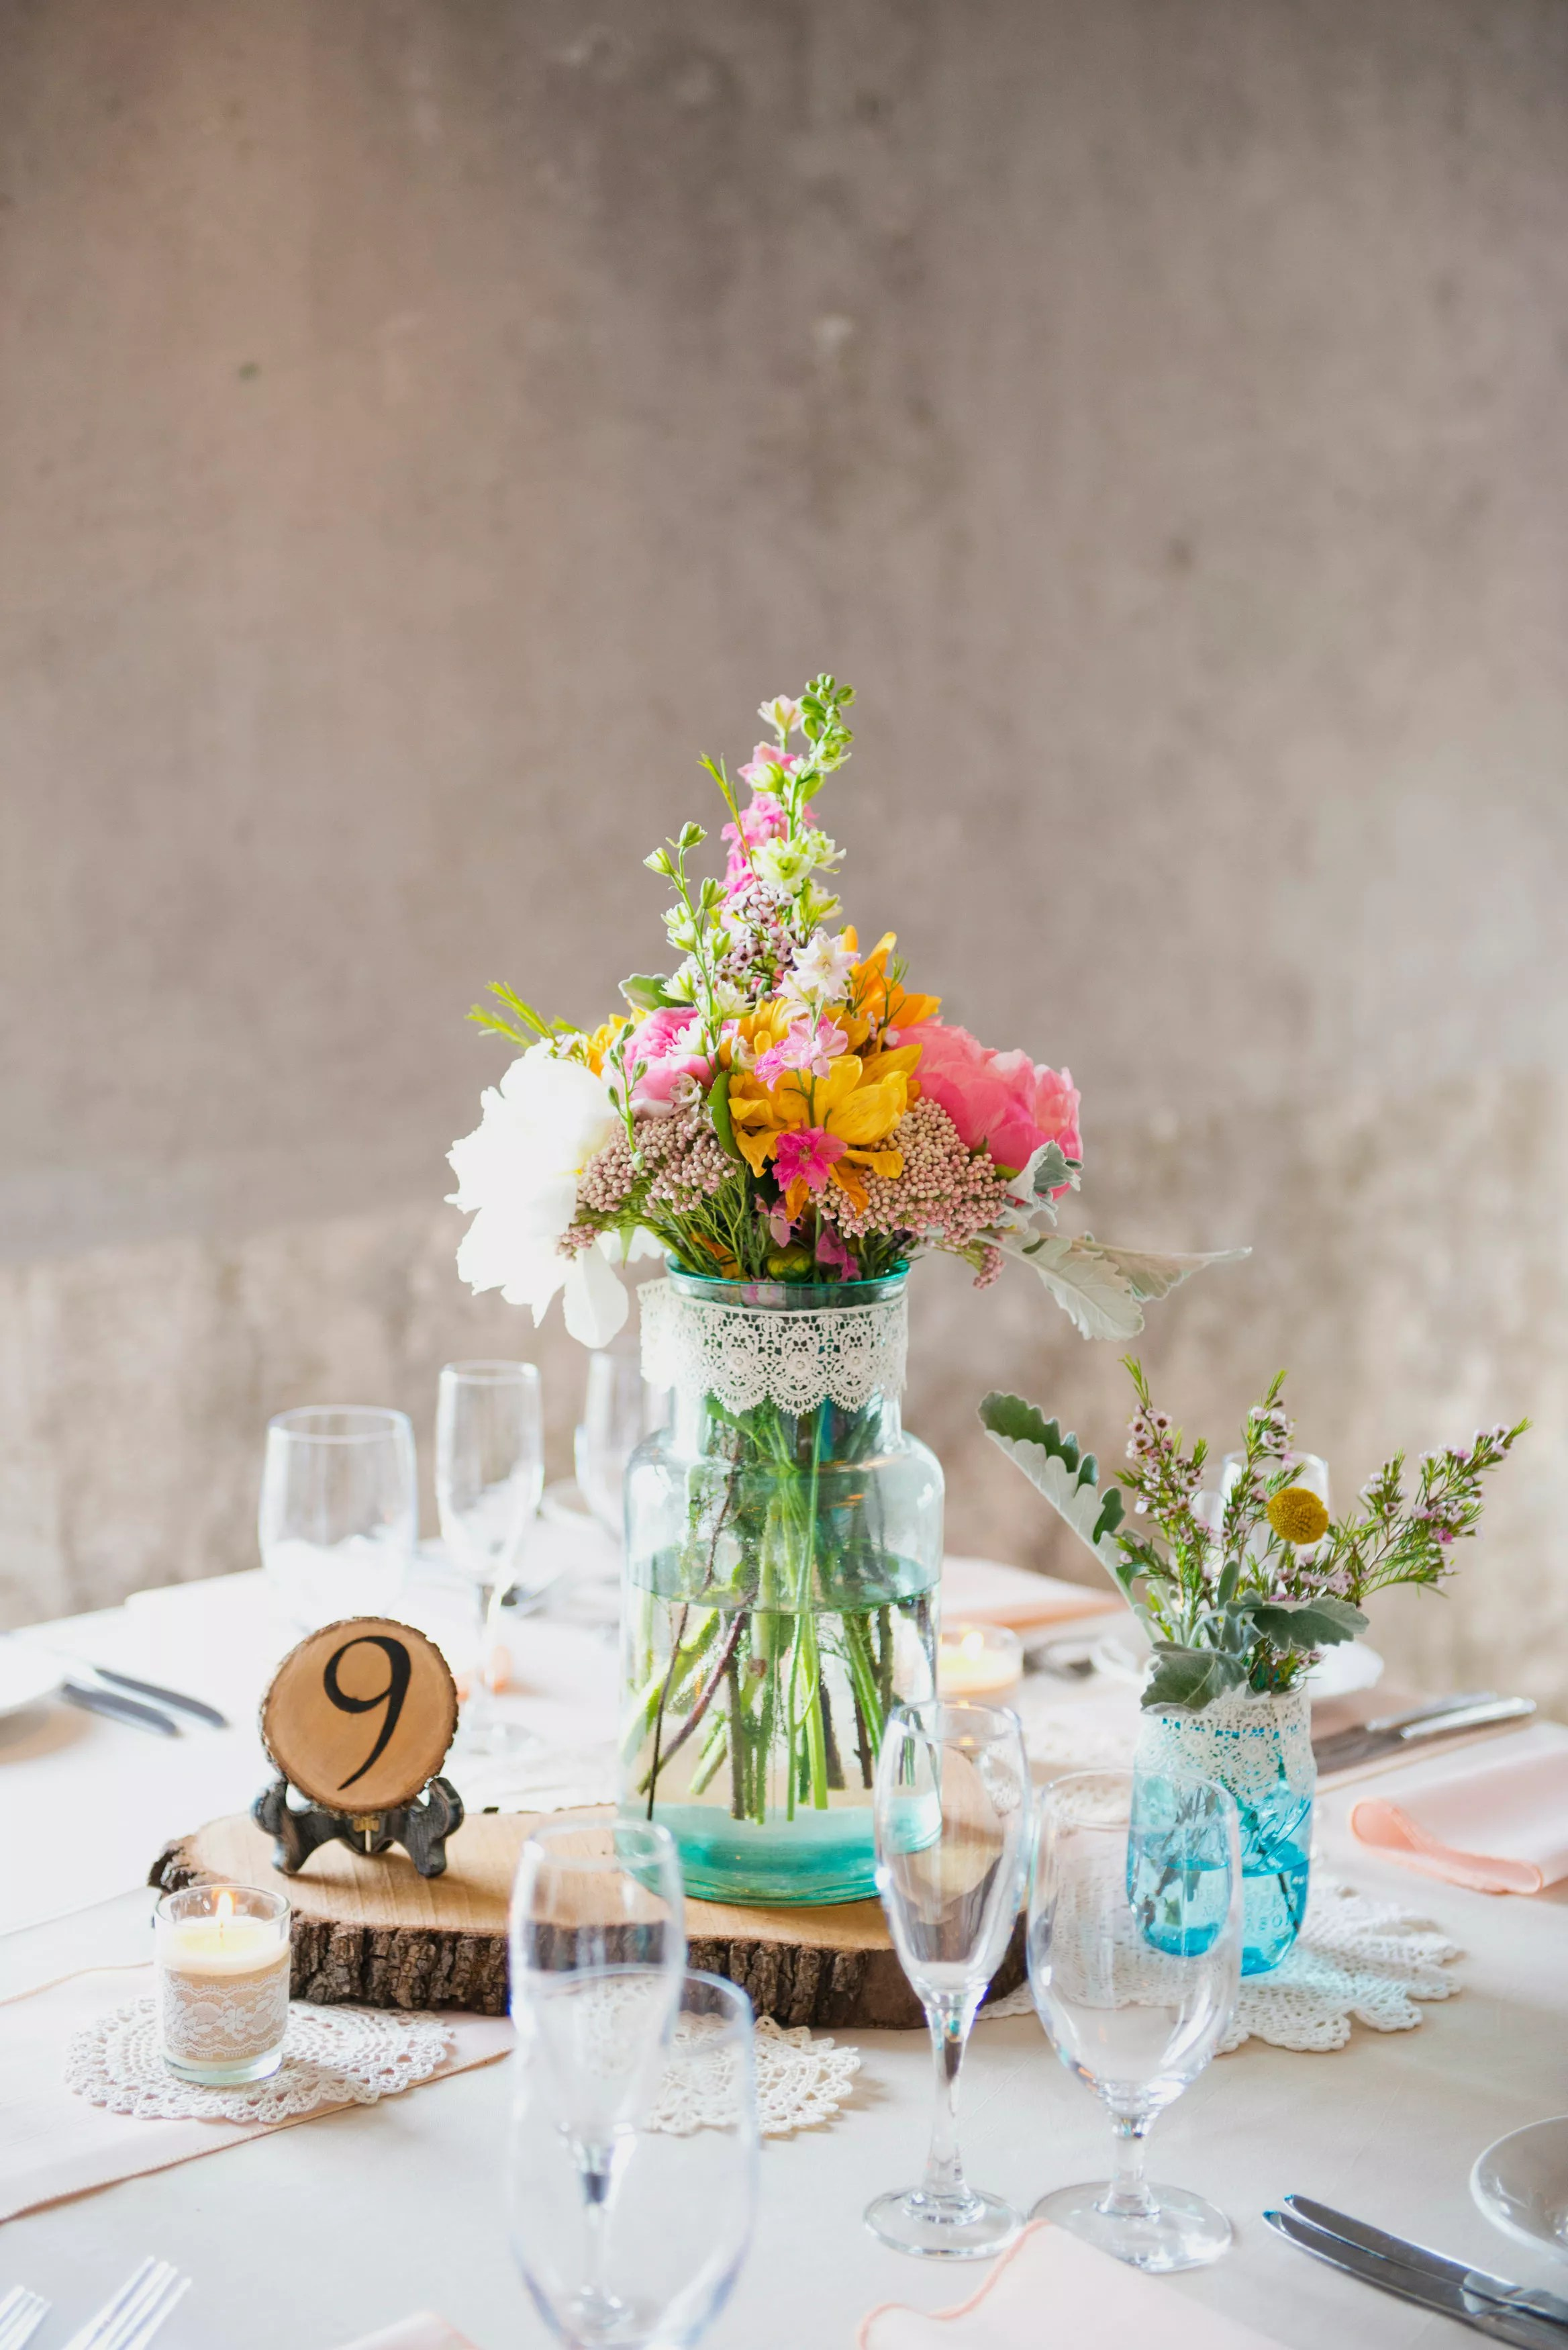 DIY Crochet Doilies And Wooden Slab Centerpieces